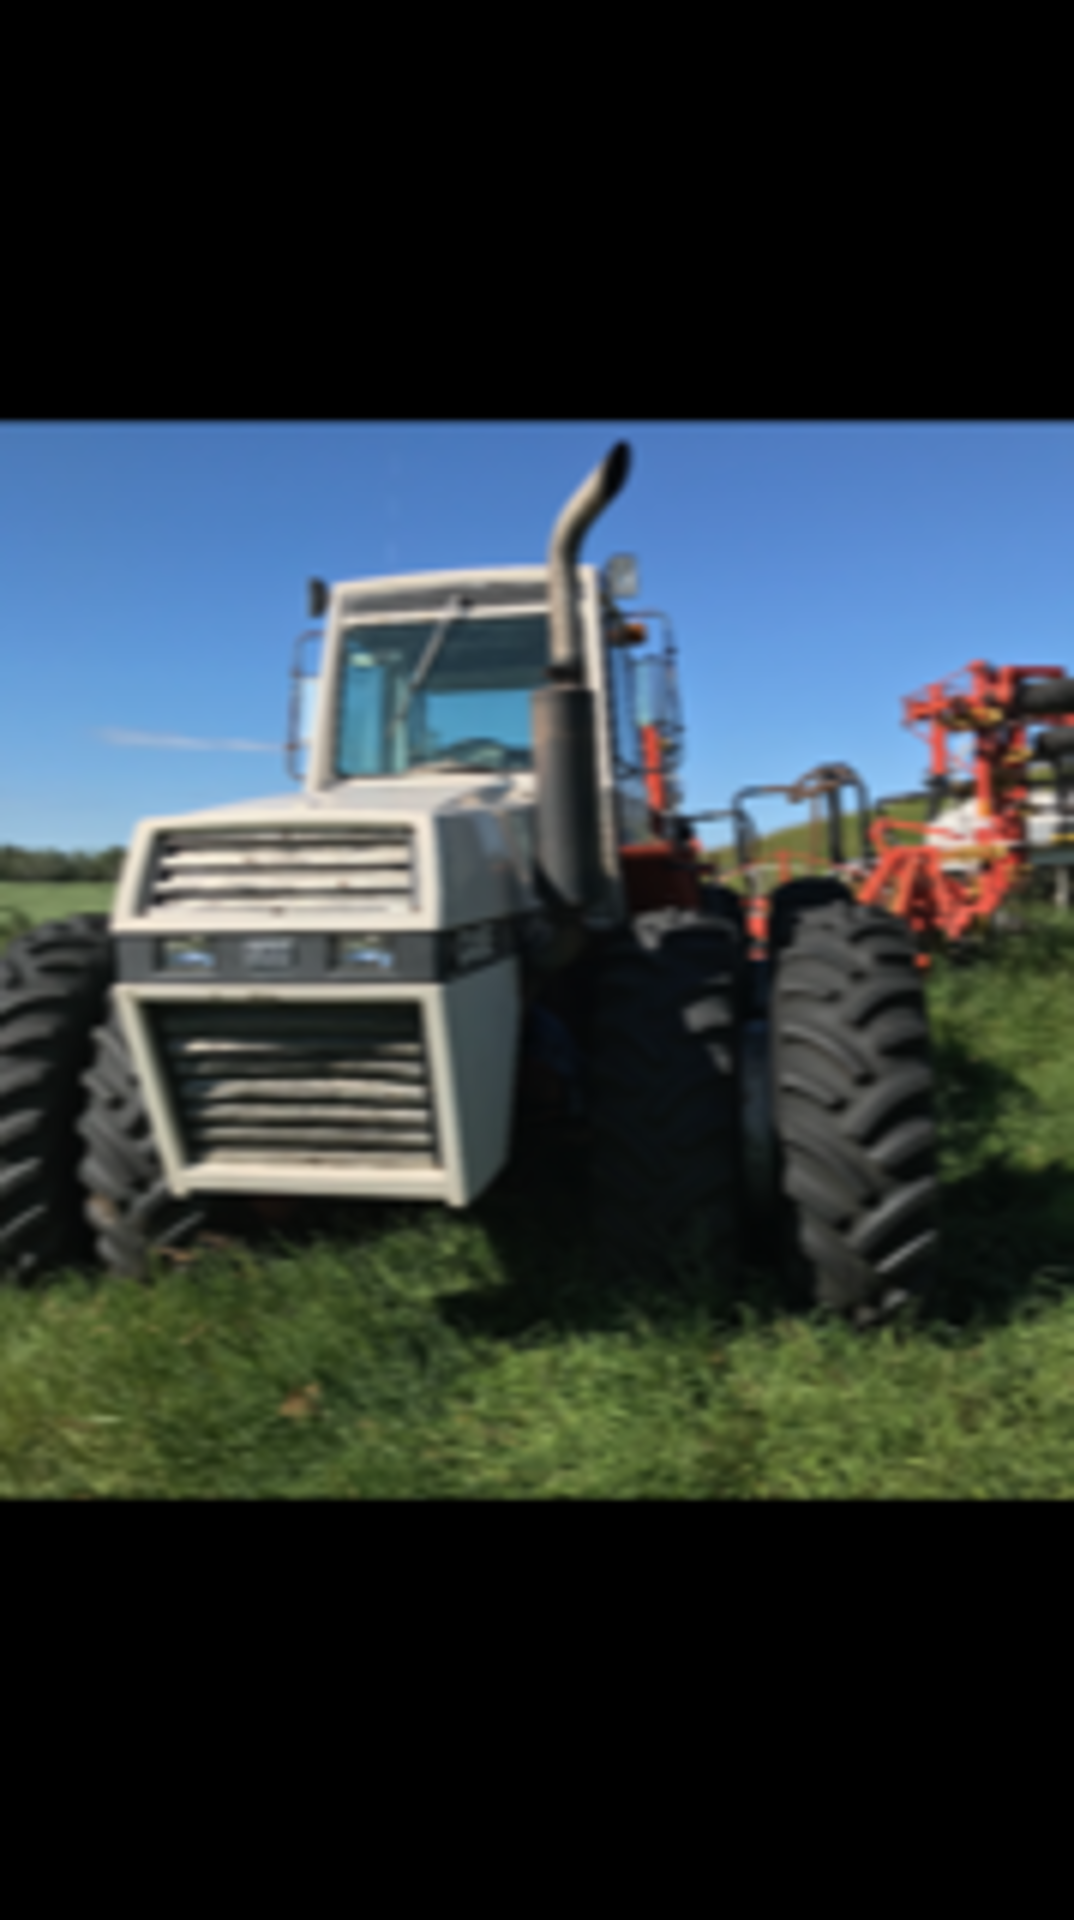 1984 Case Tractor 4690, 4wd, 5683 hrs showing sn: 10259565 - Image 2 of 4